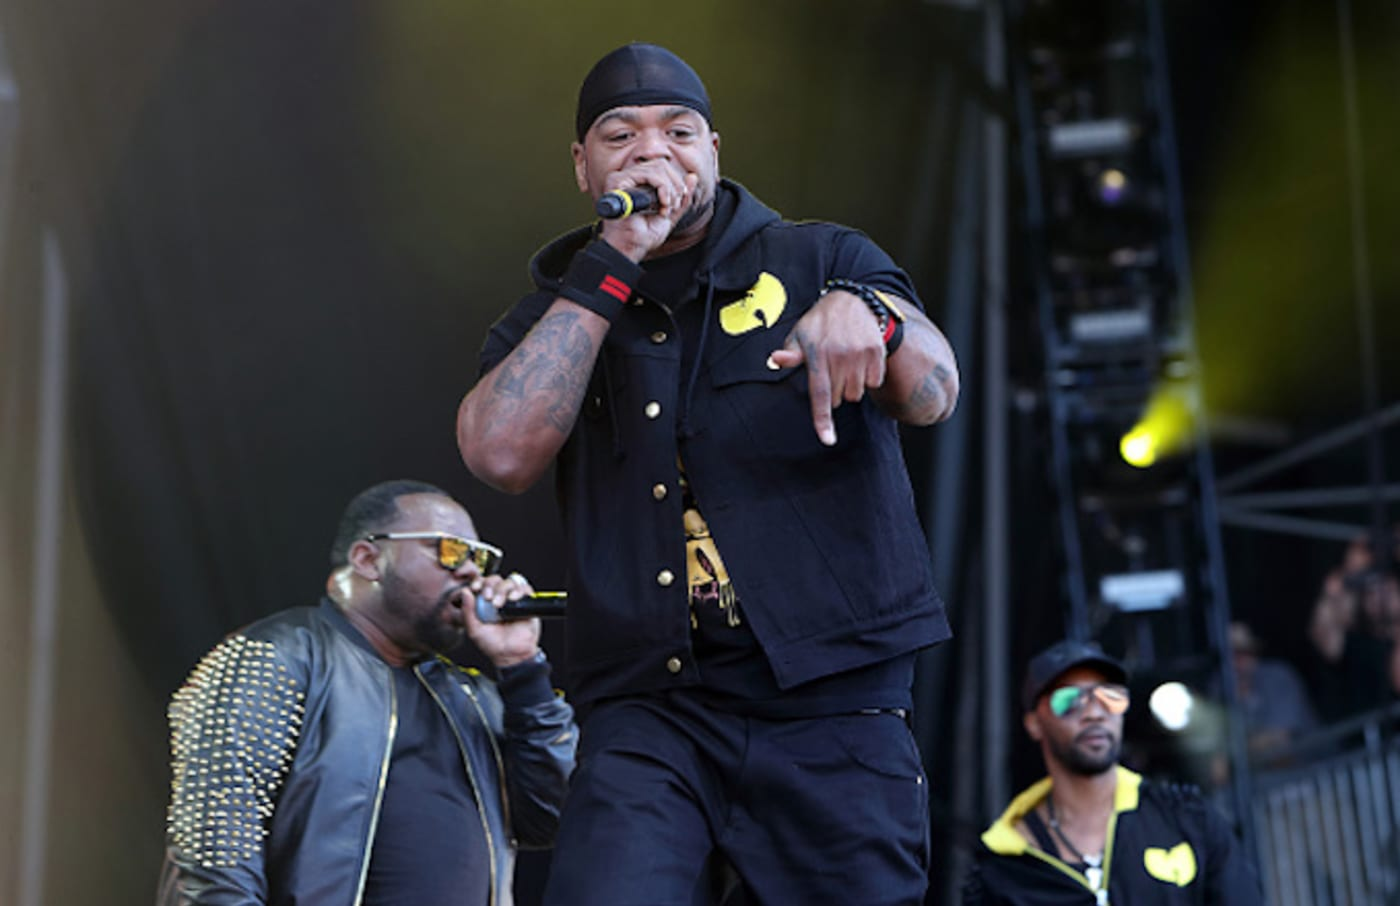 Method Man of Wu Tang Clan performs on day 2 of the Governors Ball